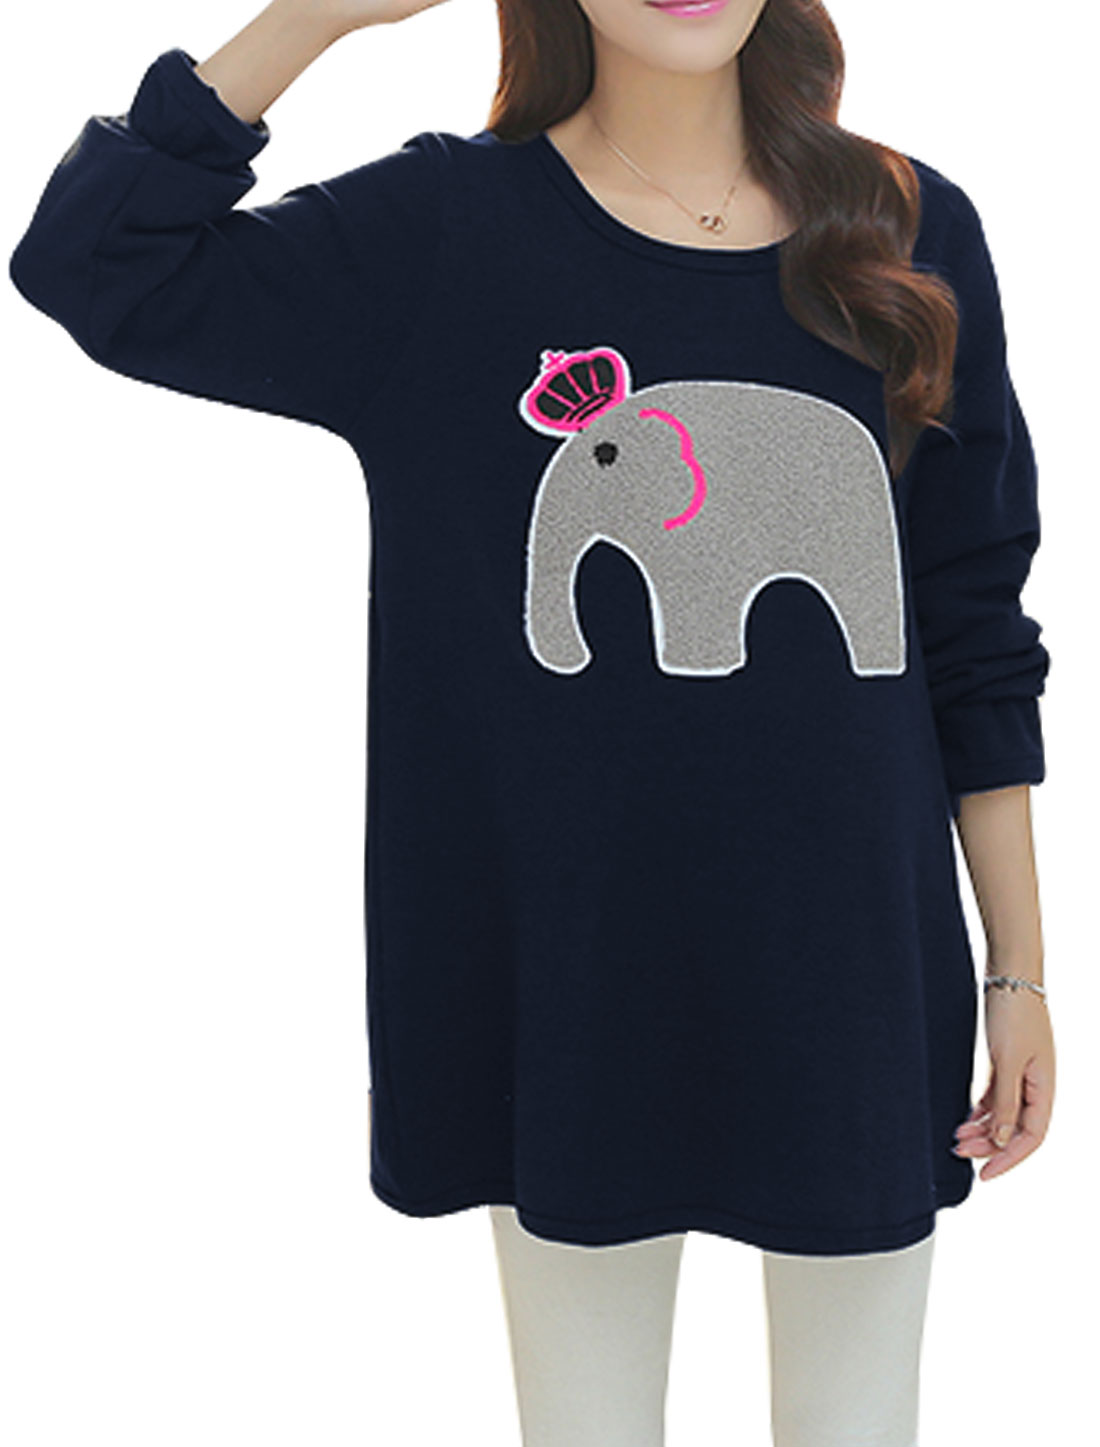 Maternity New Above Knee Fleece Lined Elephant Applique Dress Navy Blue L